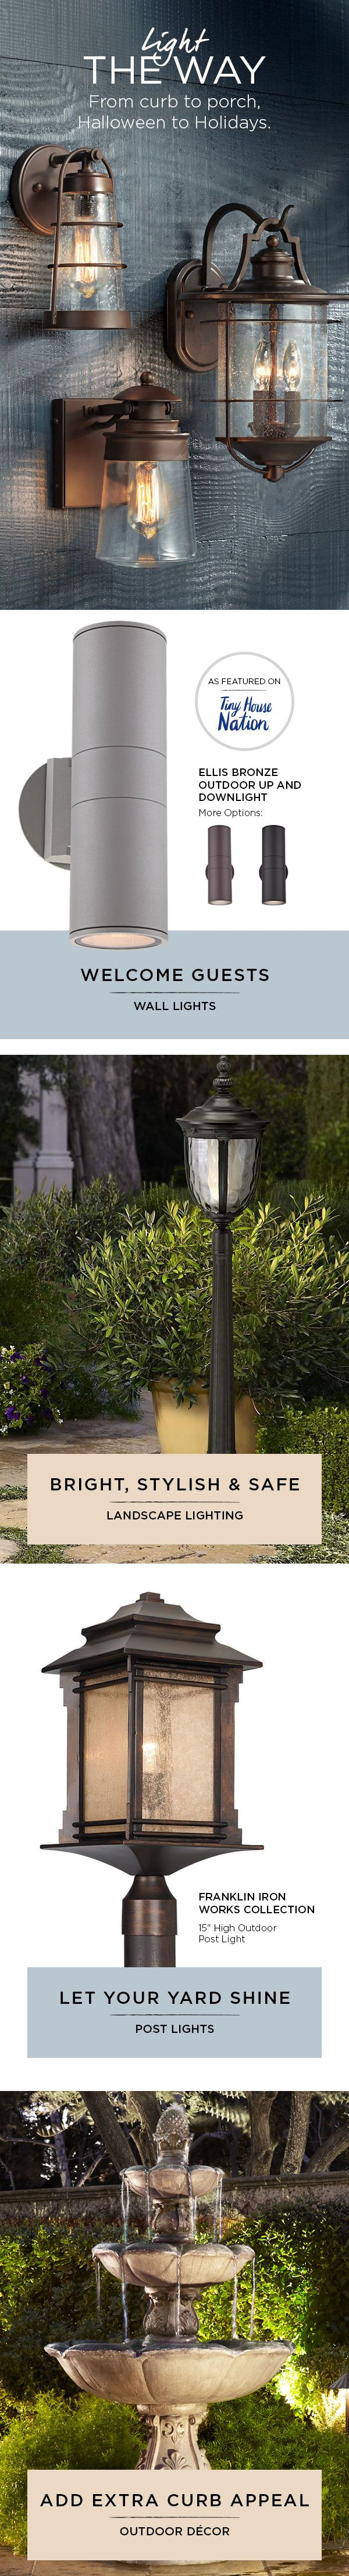 We carry a complete line of exterior lighting for porch, patio and landscape areas that can help make your home safer and more attractive. Brighten an entryway with a hanging design, add style to outside walls or ceilings, or use post lights to improve your driveway and garage areas.